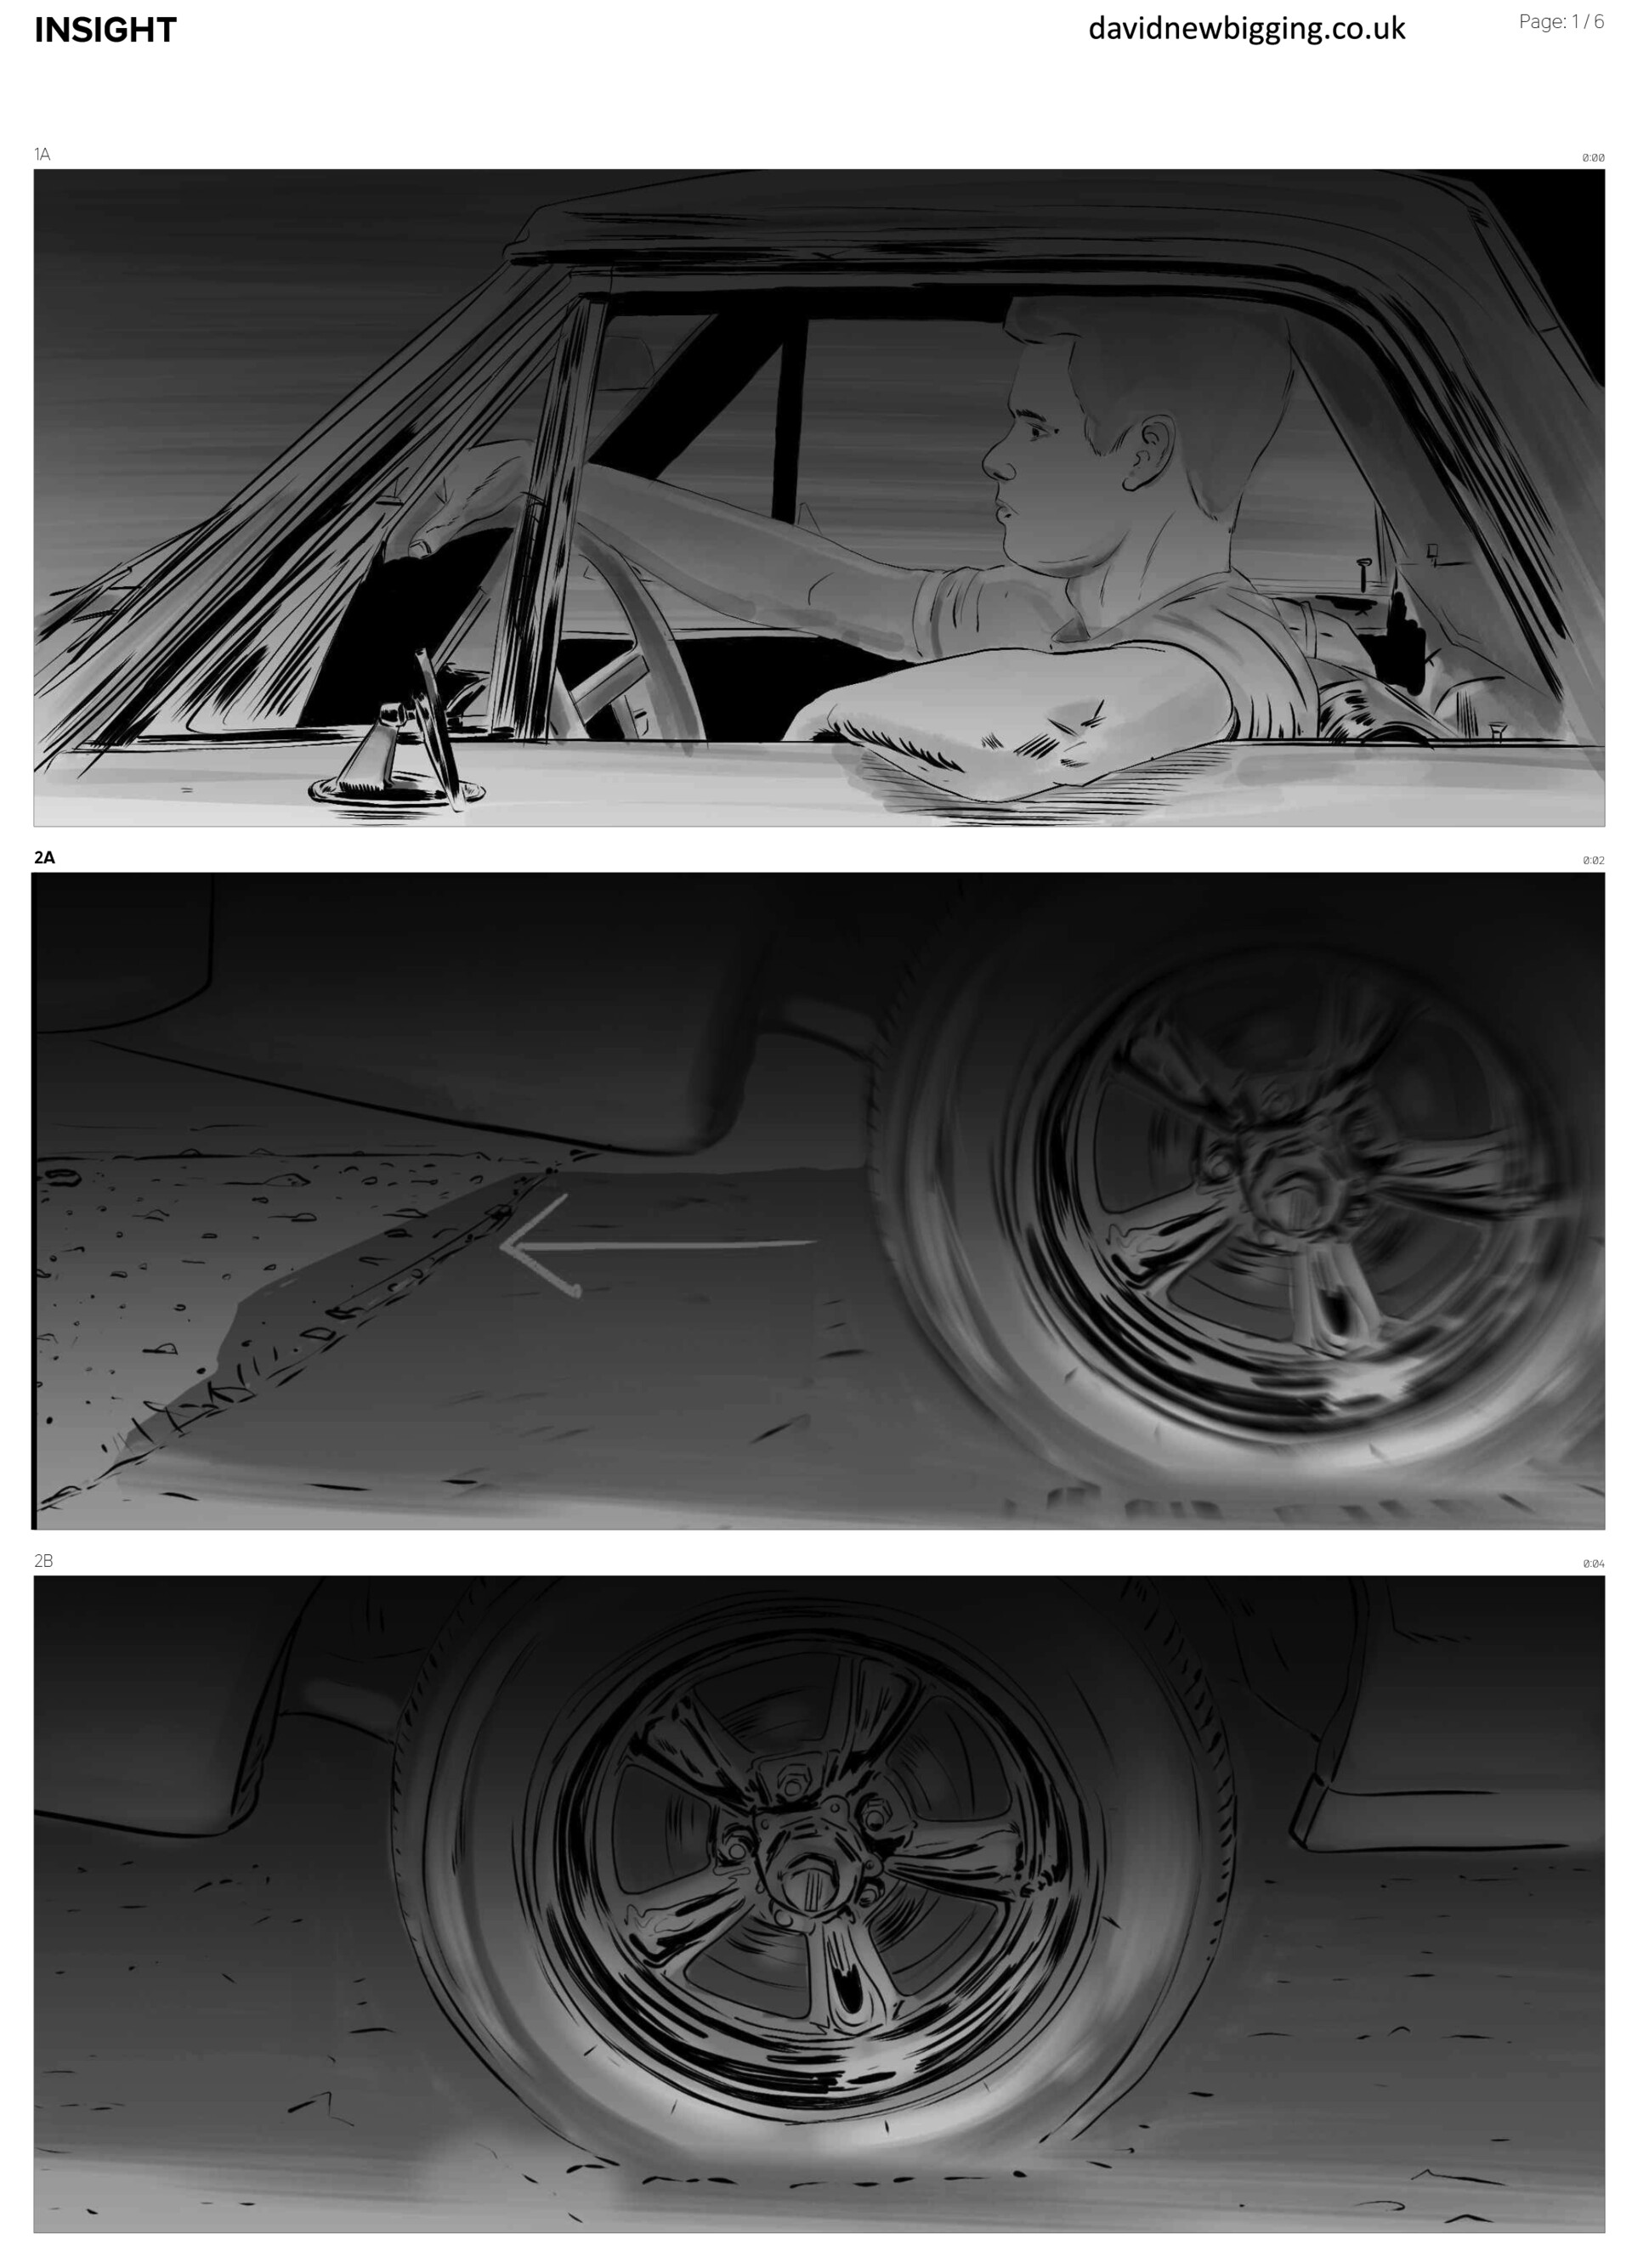 David newbigging insight teaser storyboards v2 1